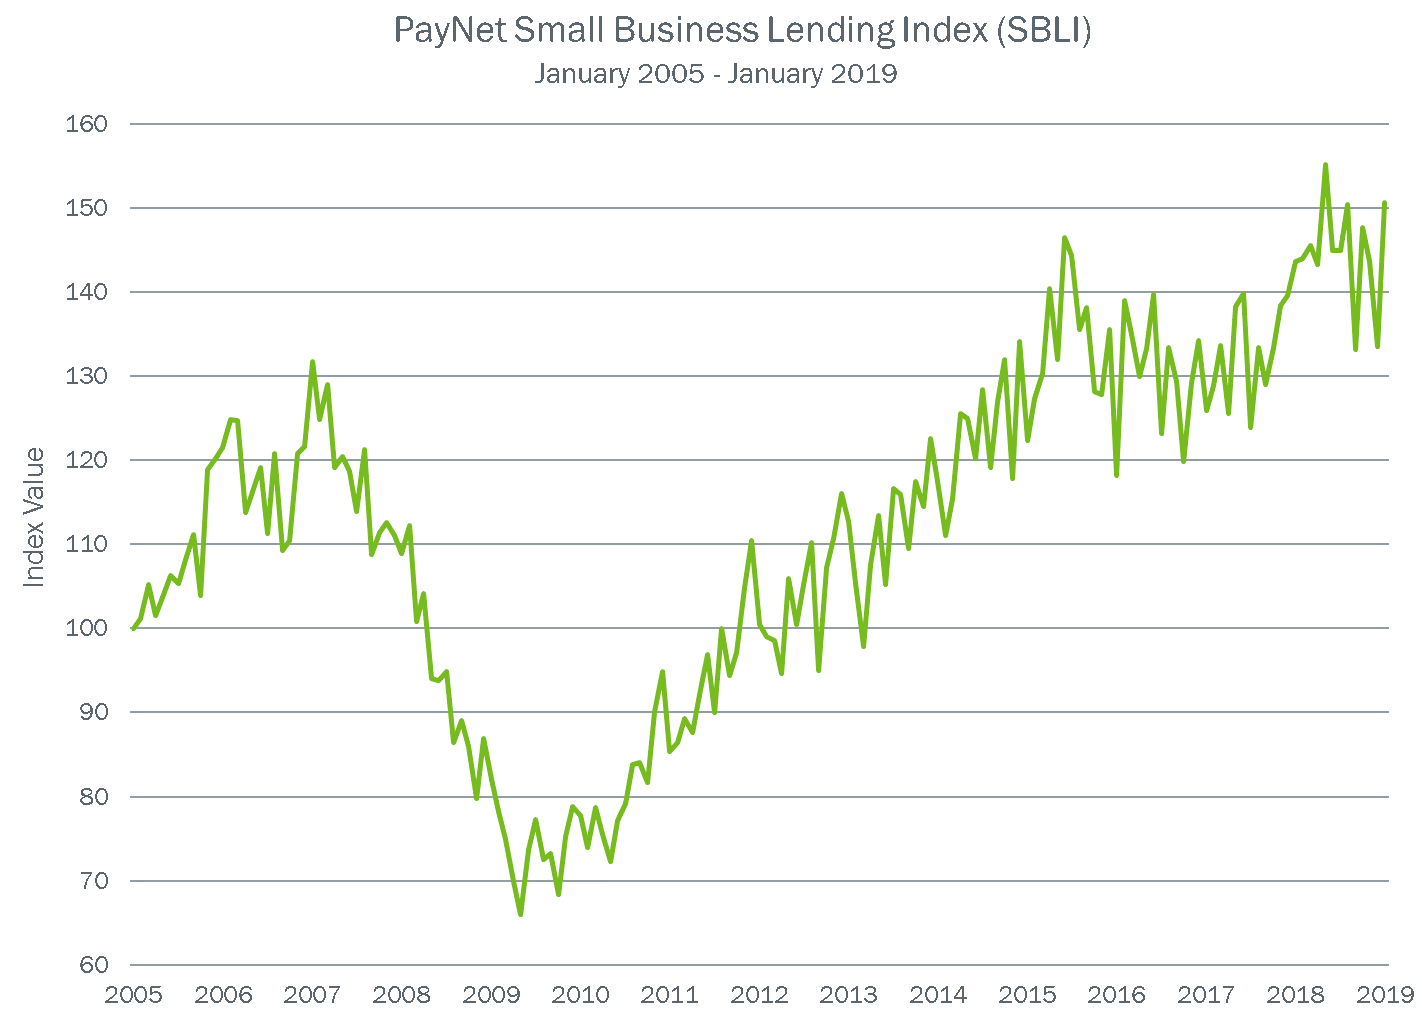 PayNet Small Business Lending Index